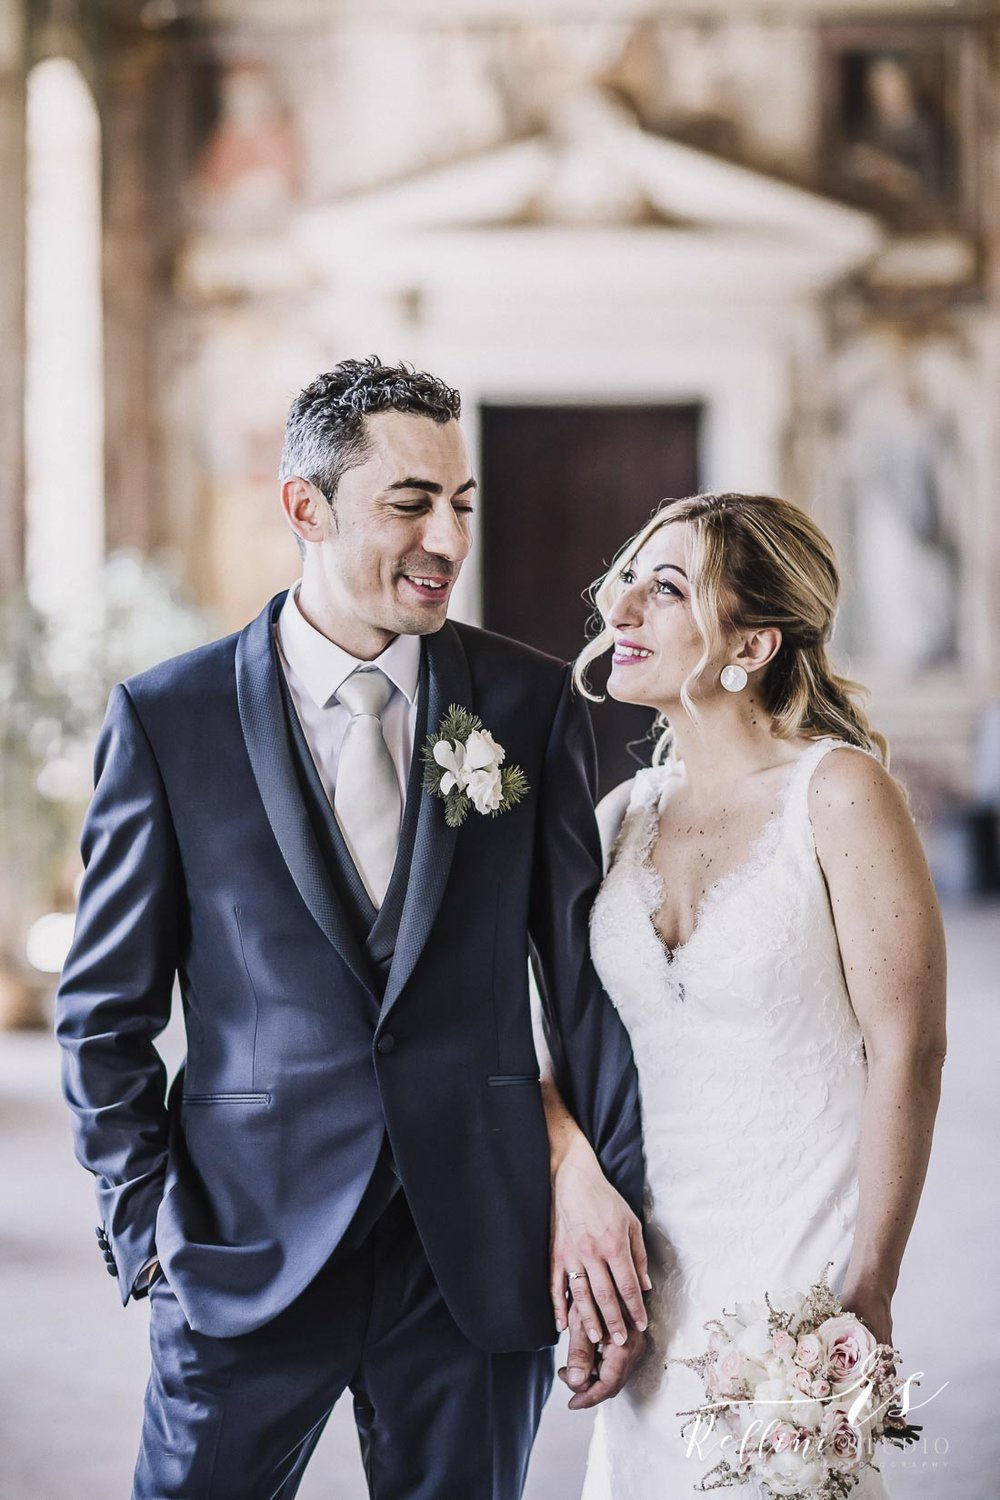 Wedding photographer Umbria, Italy